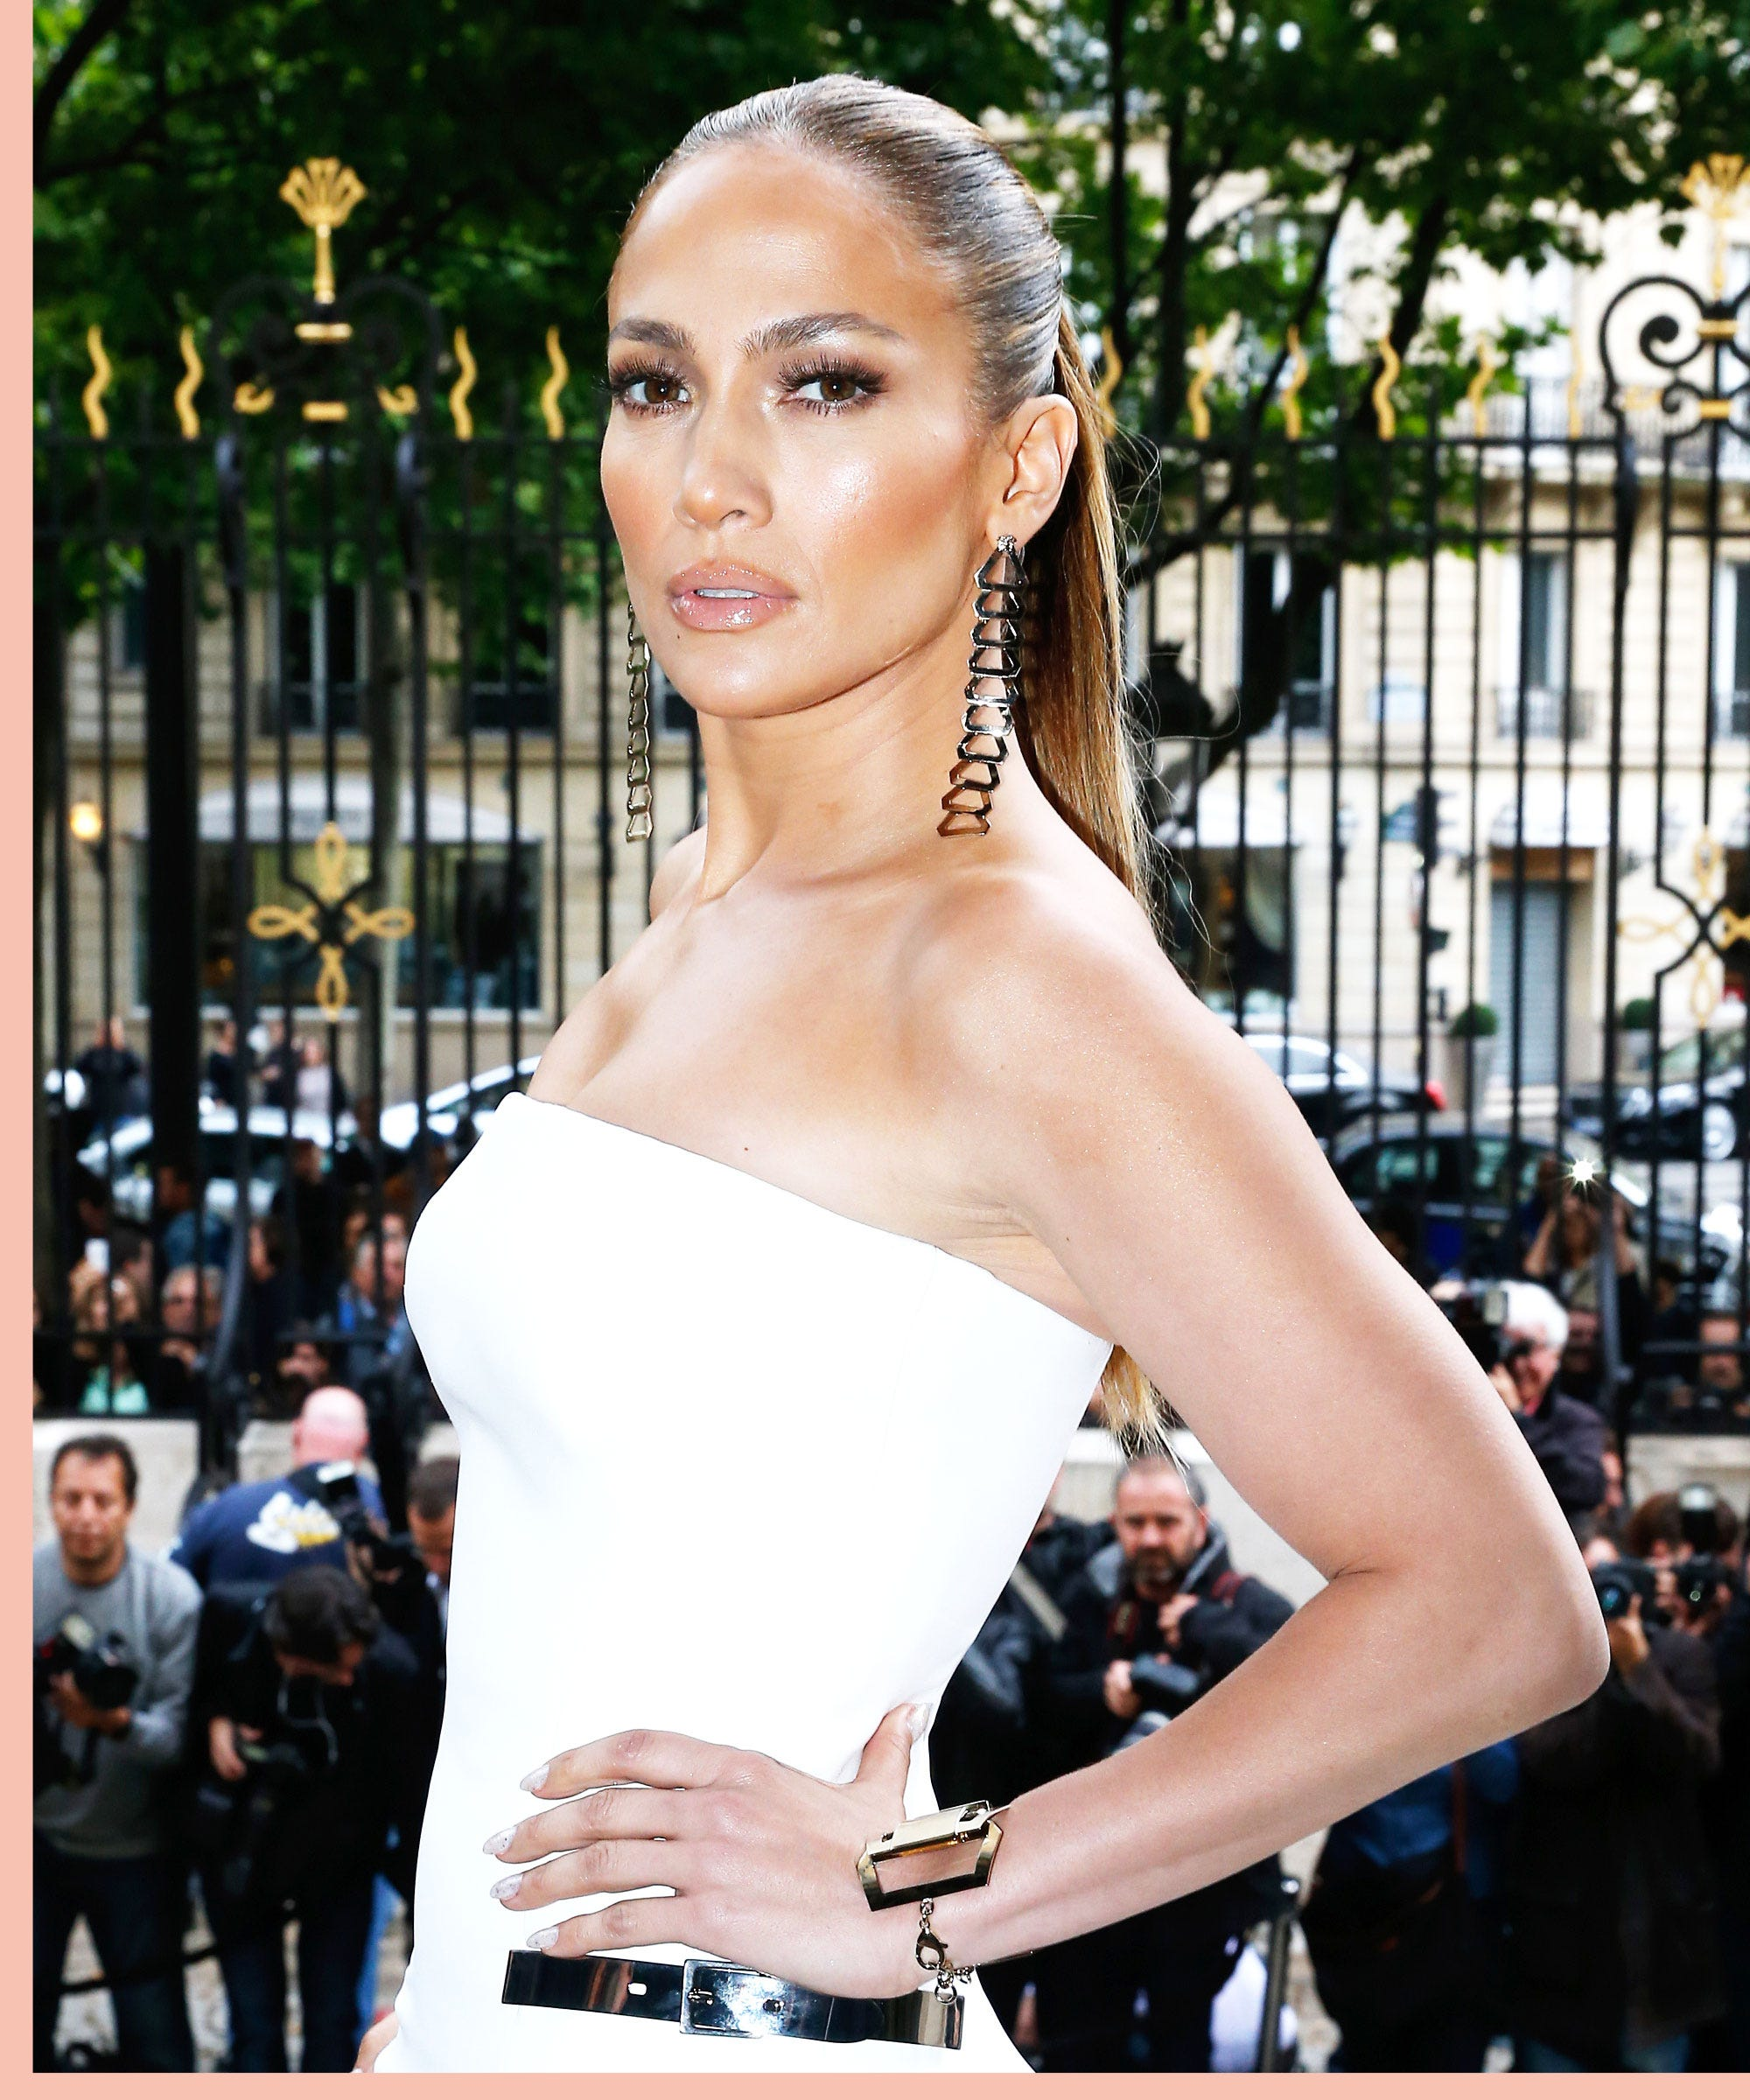 J.Lo's Pearl Manicure Is One You'll Want To Copy This Summer